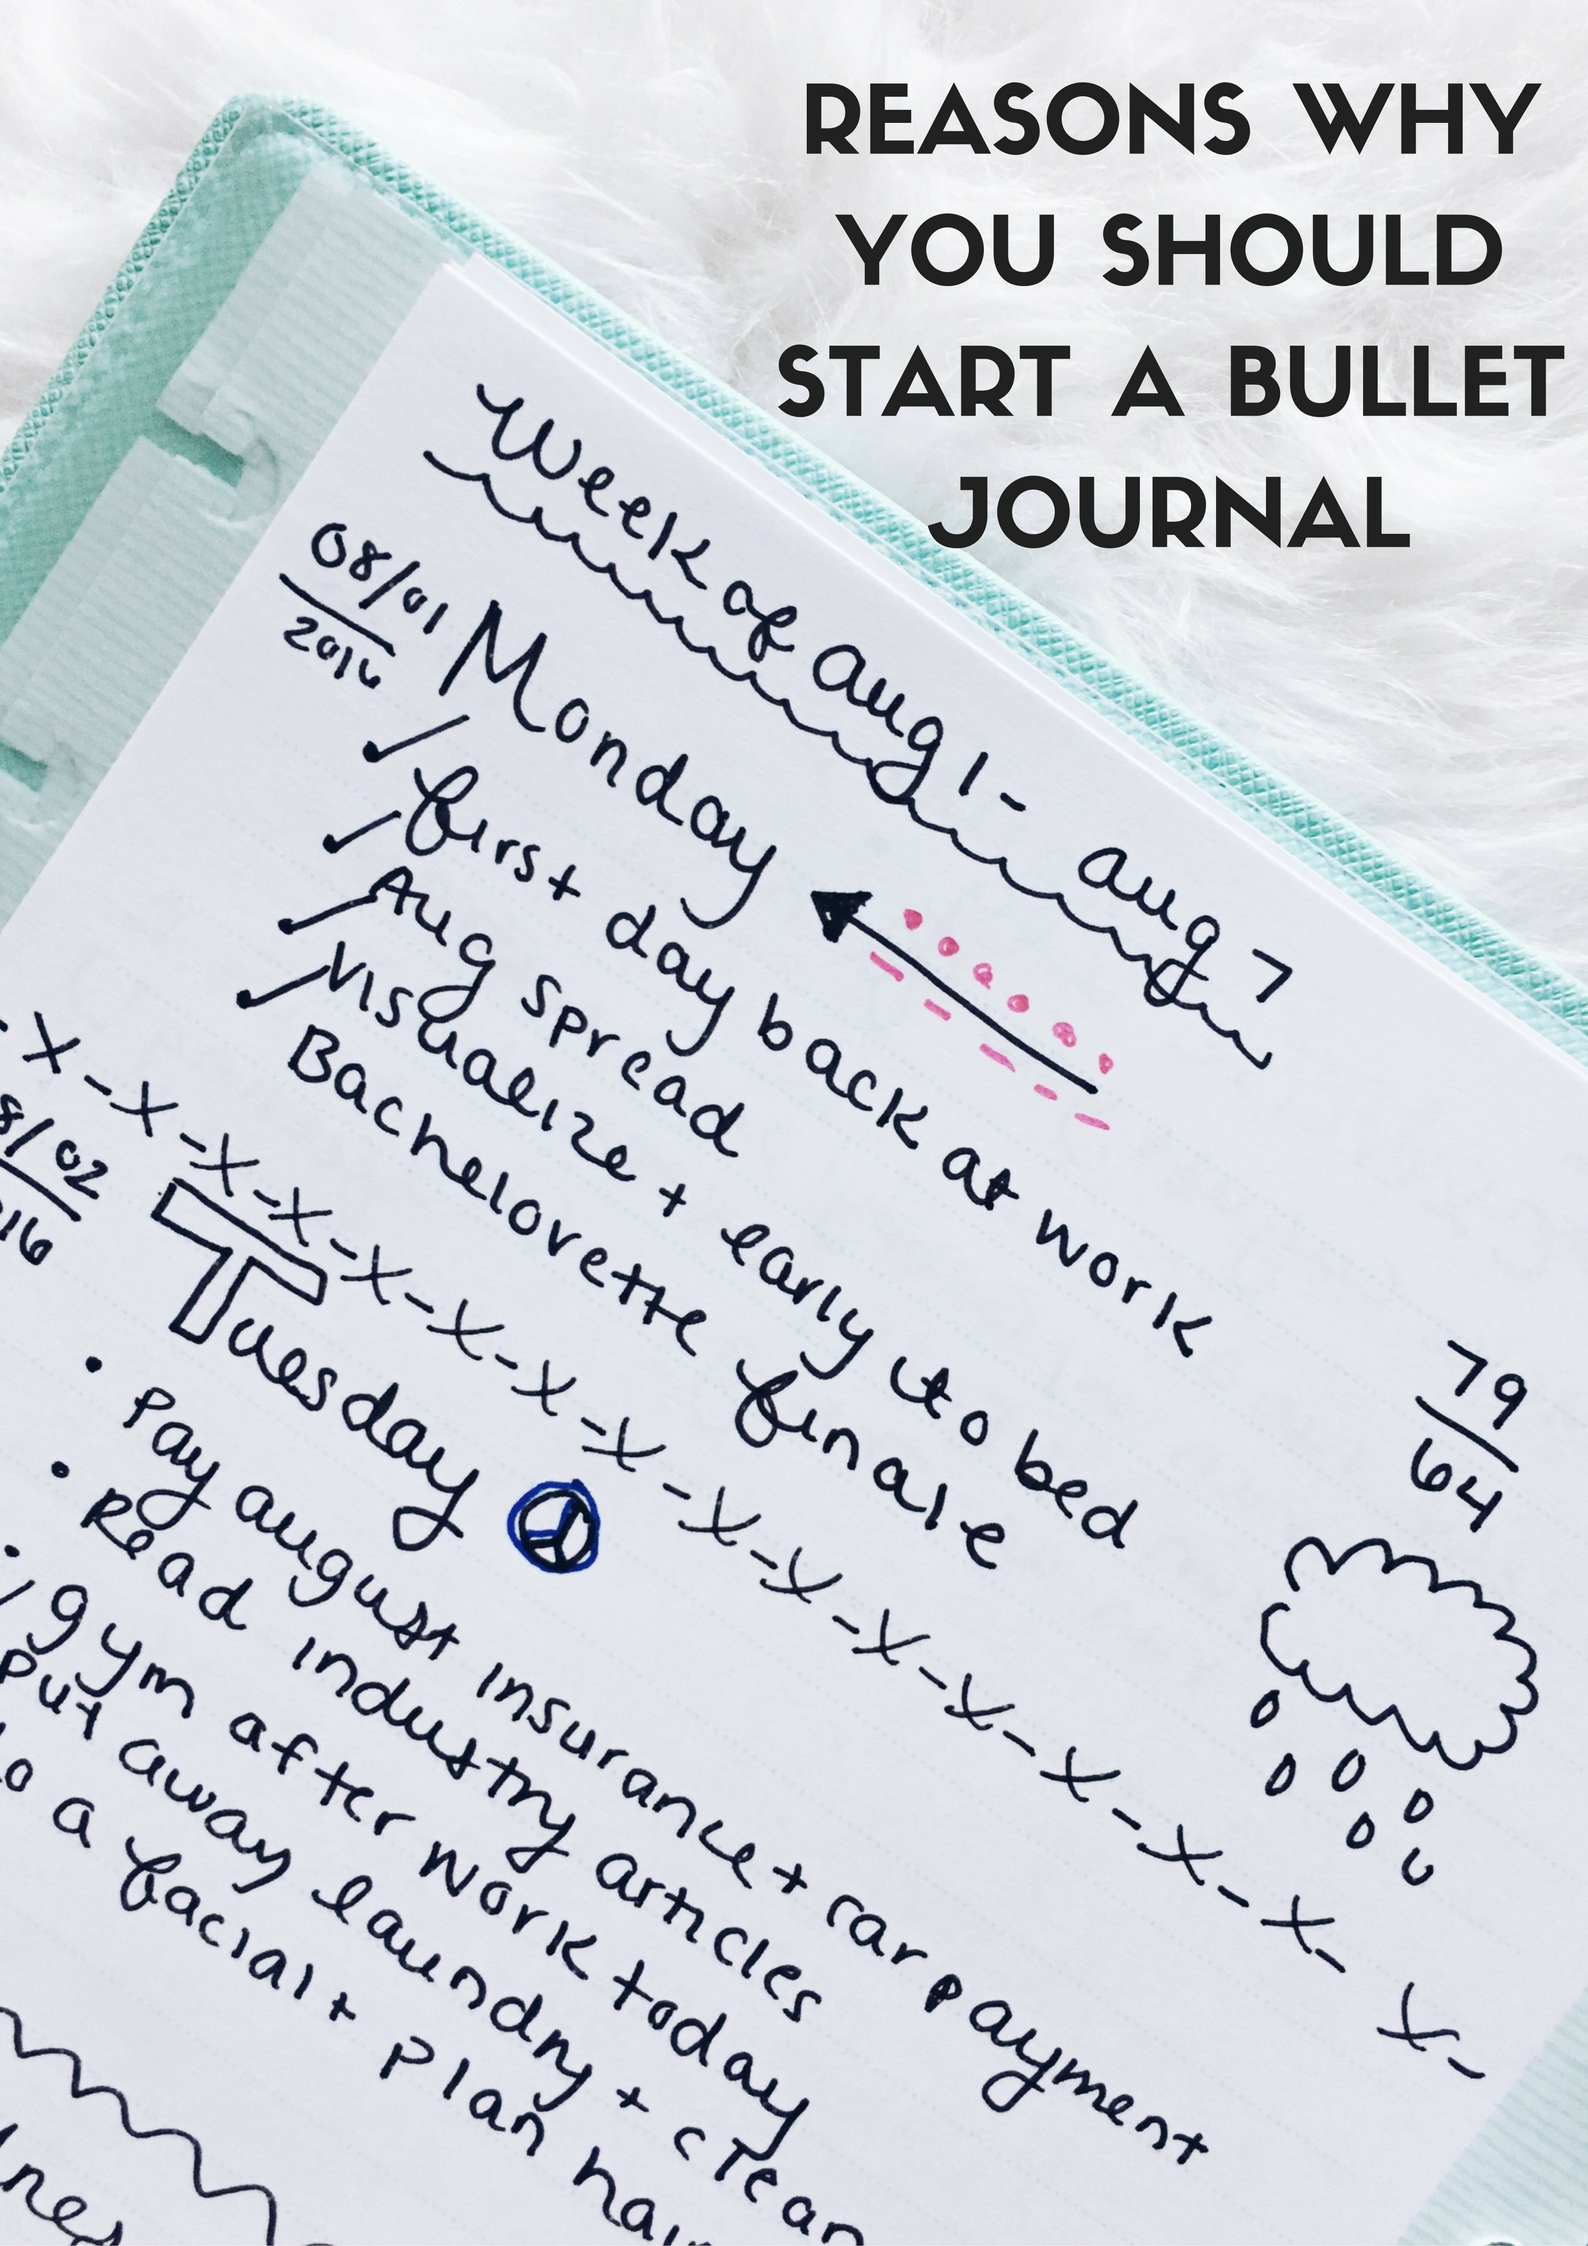 reasons-why-you-should-start-a-bullet-journal